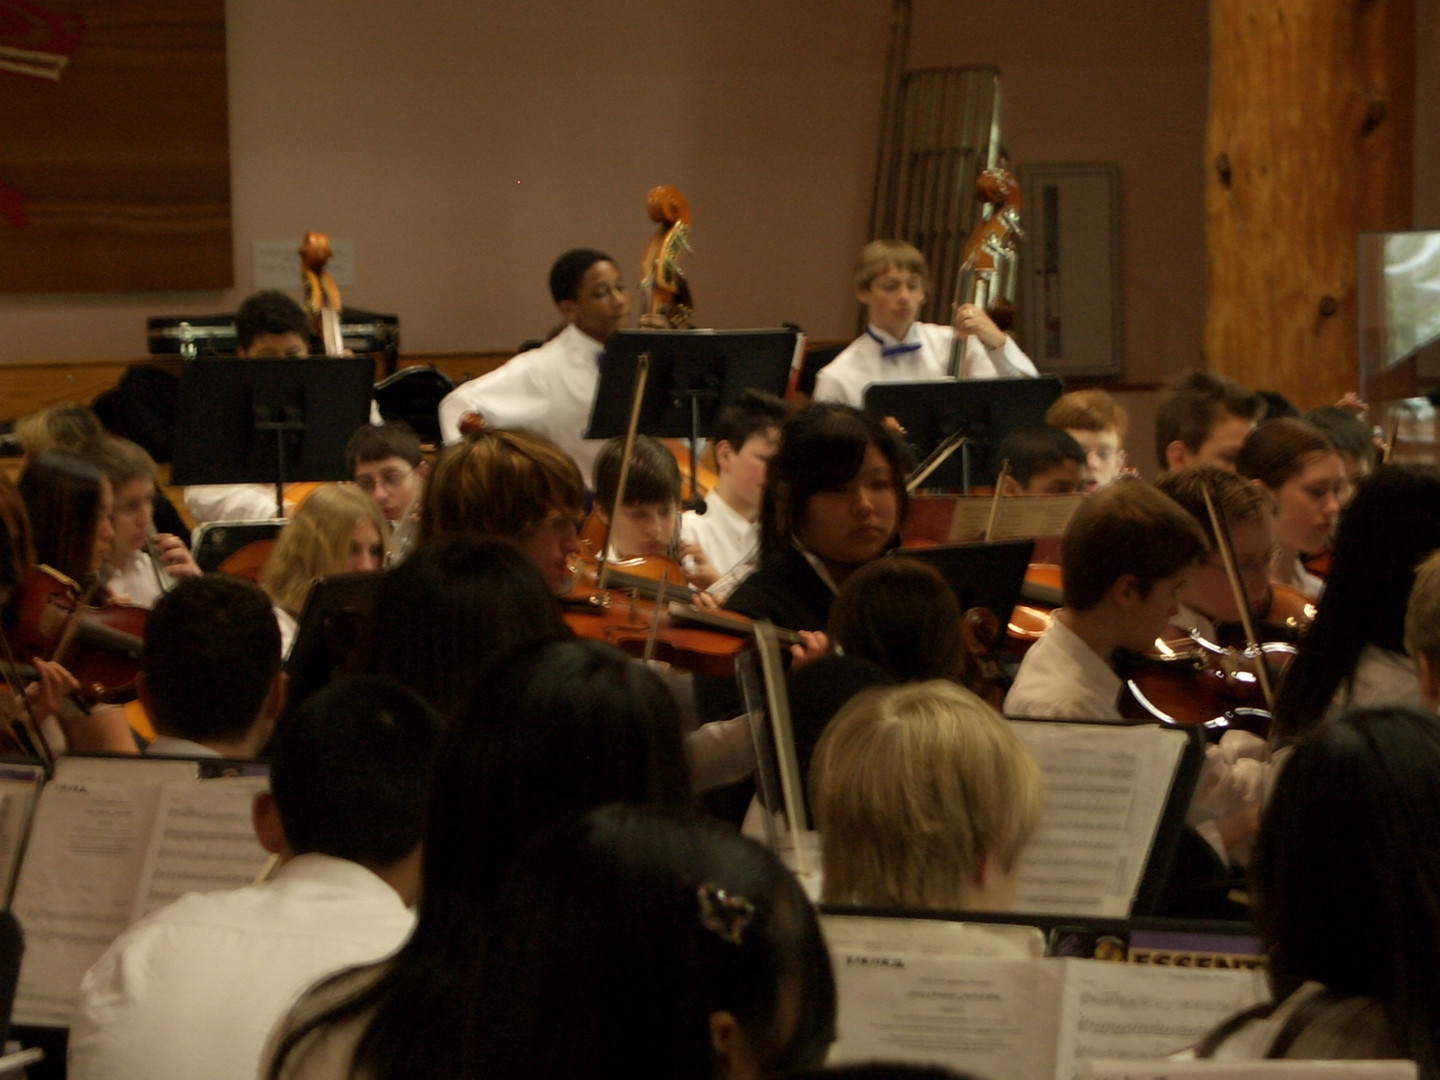 Orchestra pictures 051.jpg